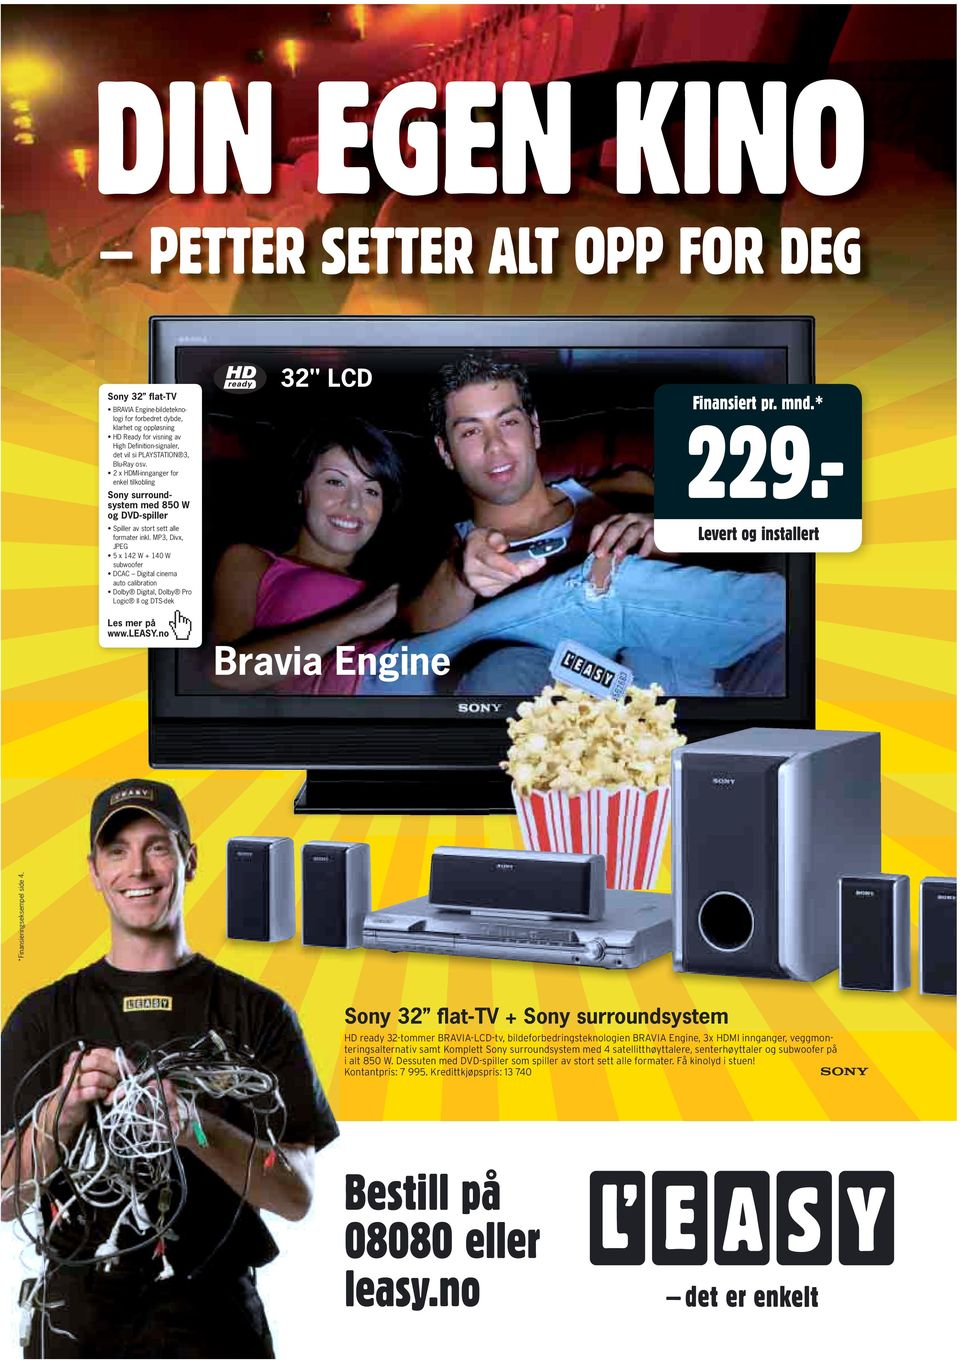 "MP3, Divx, JPEG 5 x 142 W + 140 W subwoofer DCAC Digital cinema auto calibration Dolby Digital, Dolby Pro Logic II og DTS-dek 32"" LCD Bravia Engine 229.- *Finansieringseksempel side 4."